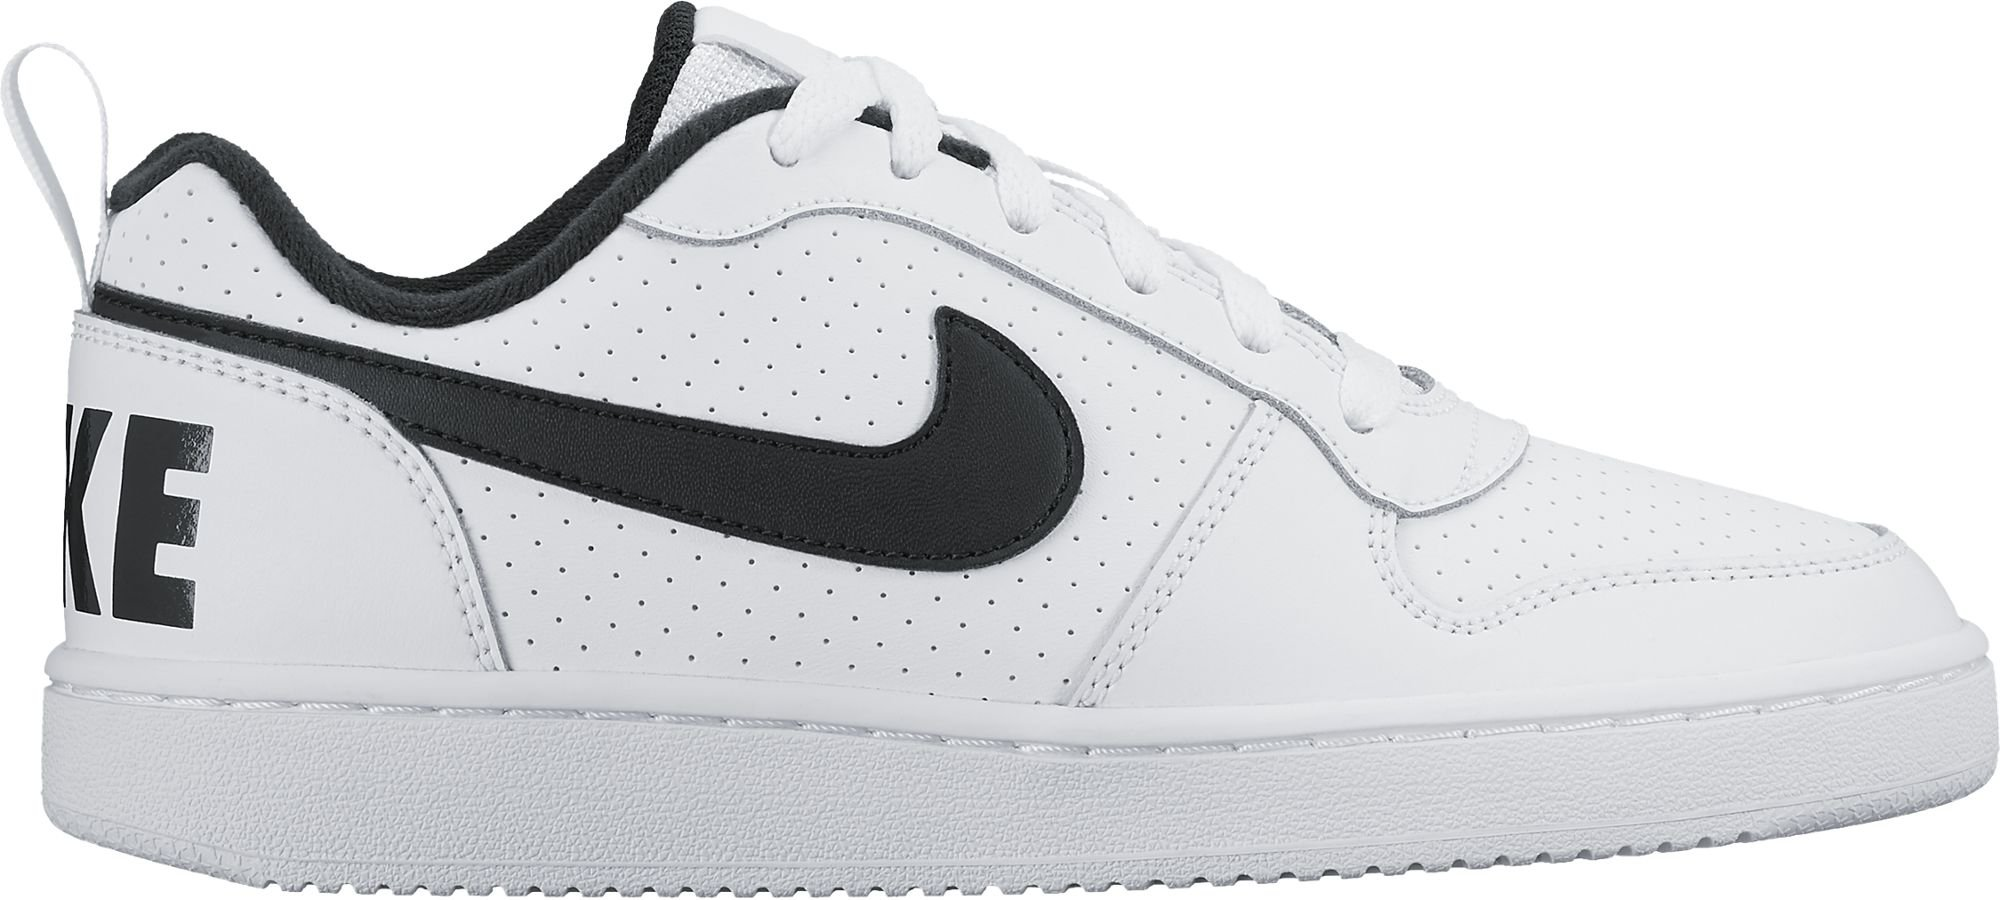 Nike Court Borough Low (GS), Zapatos de Baloncesto Unisex Niños product image